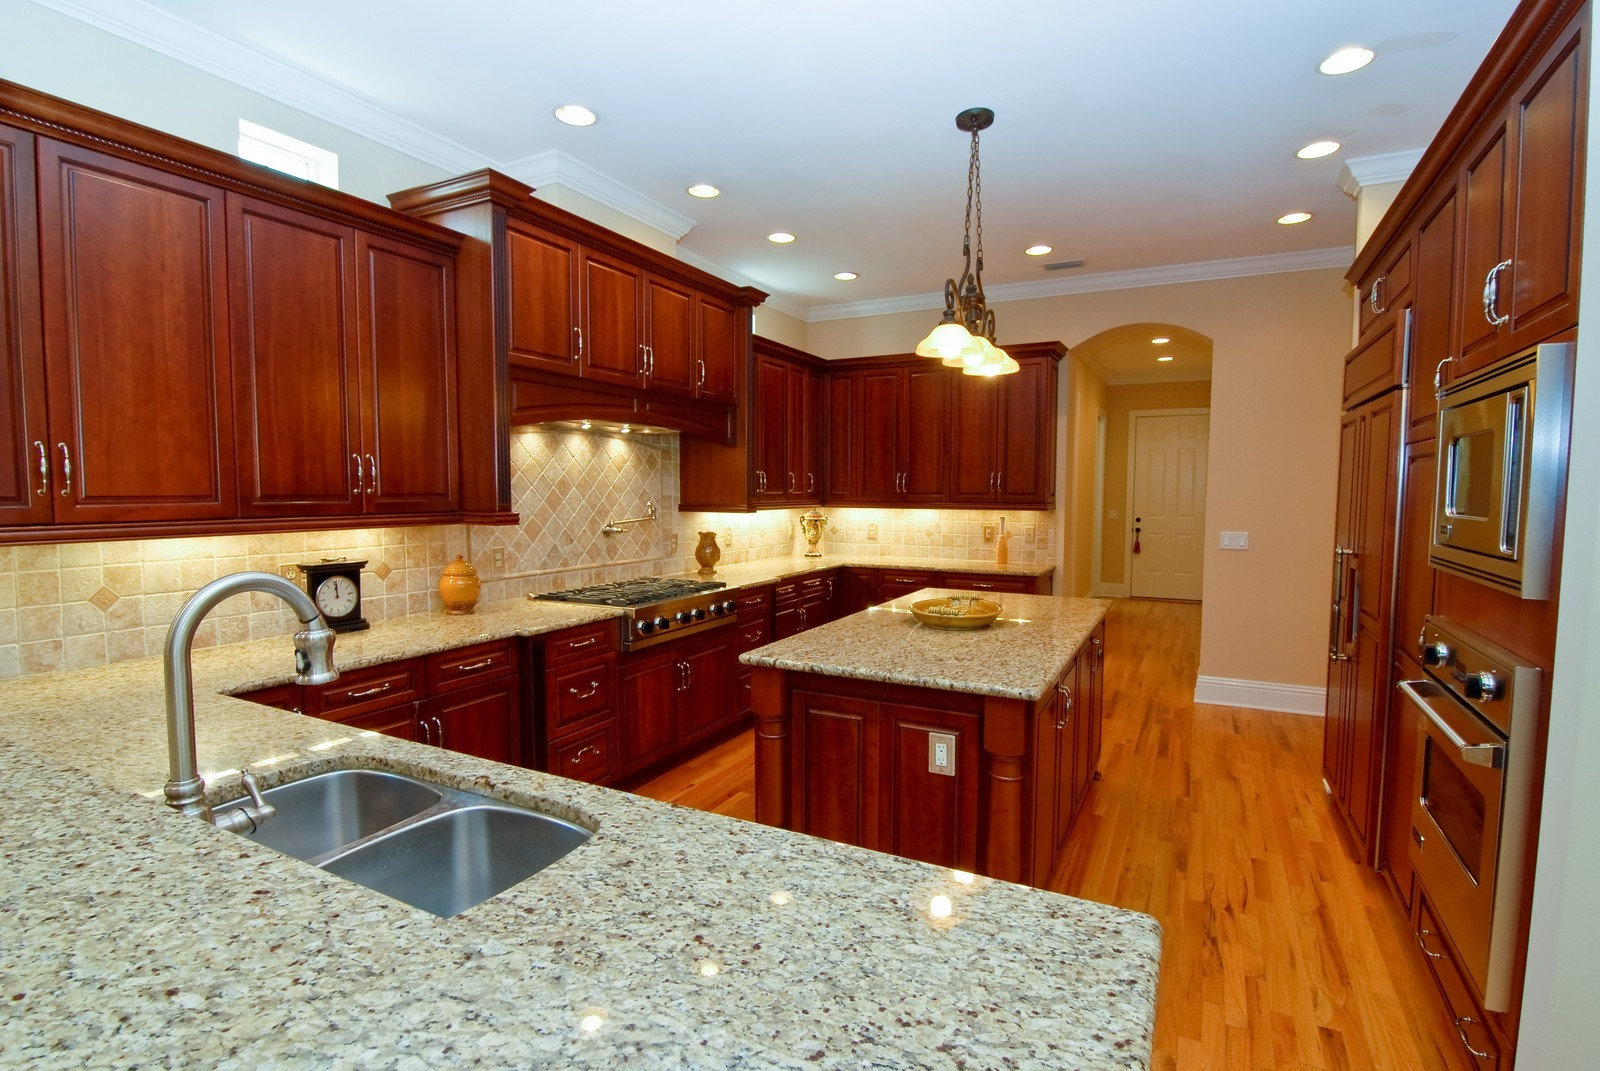 Real Estate Photography - 3107 Fountain Blvd, Tampa, FL, 33609 - Kitchen